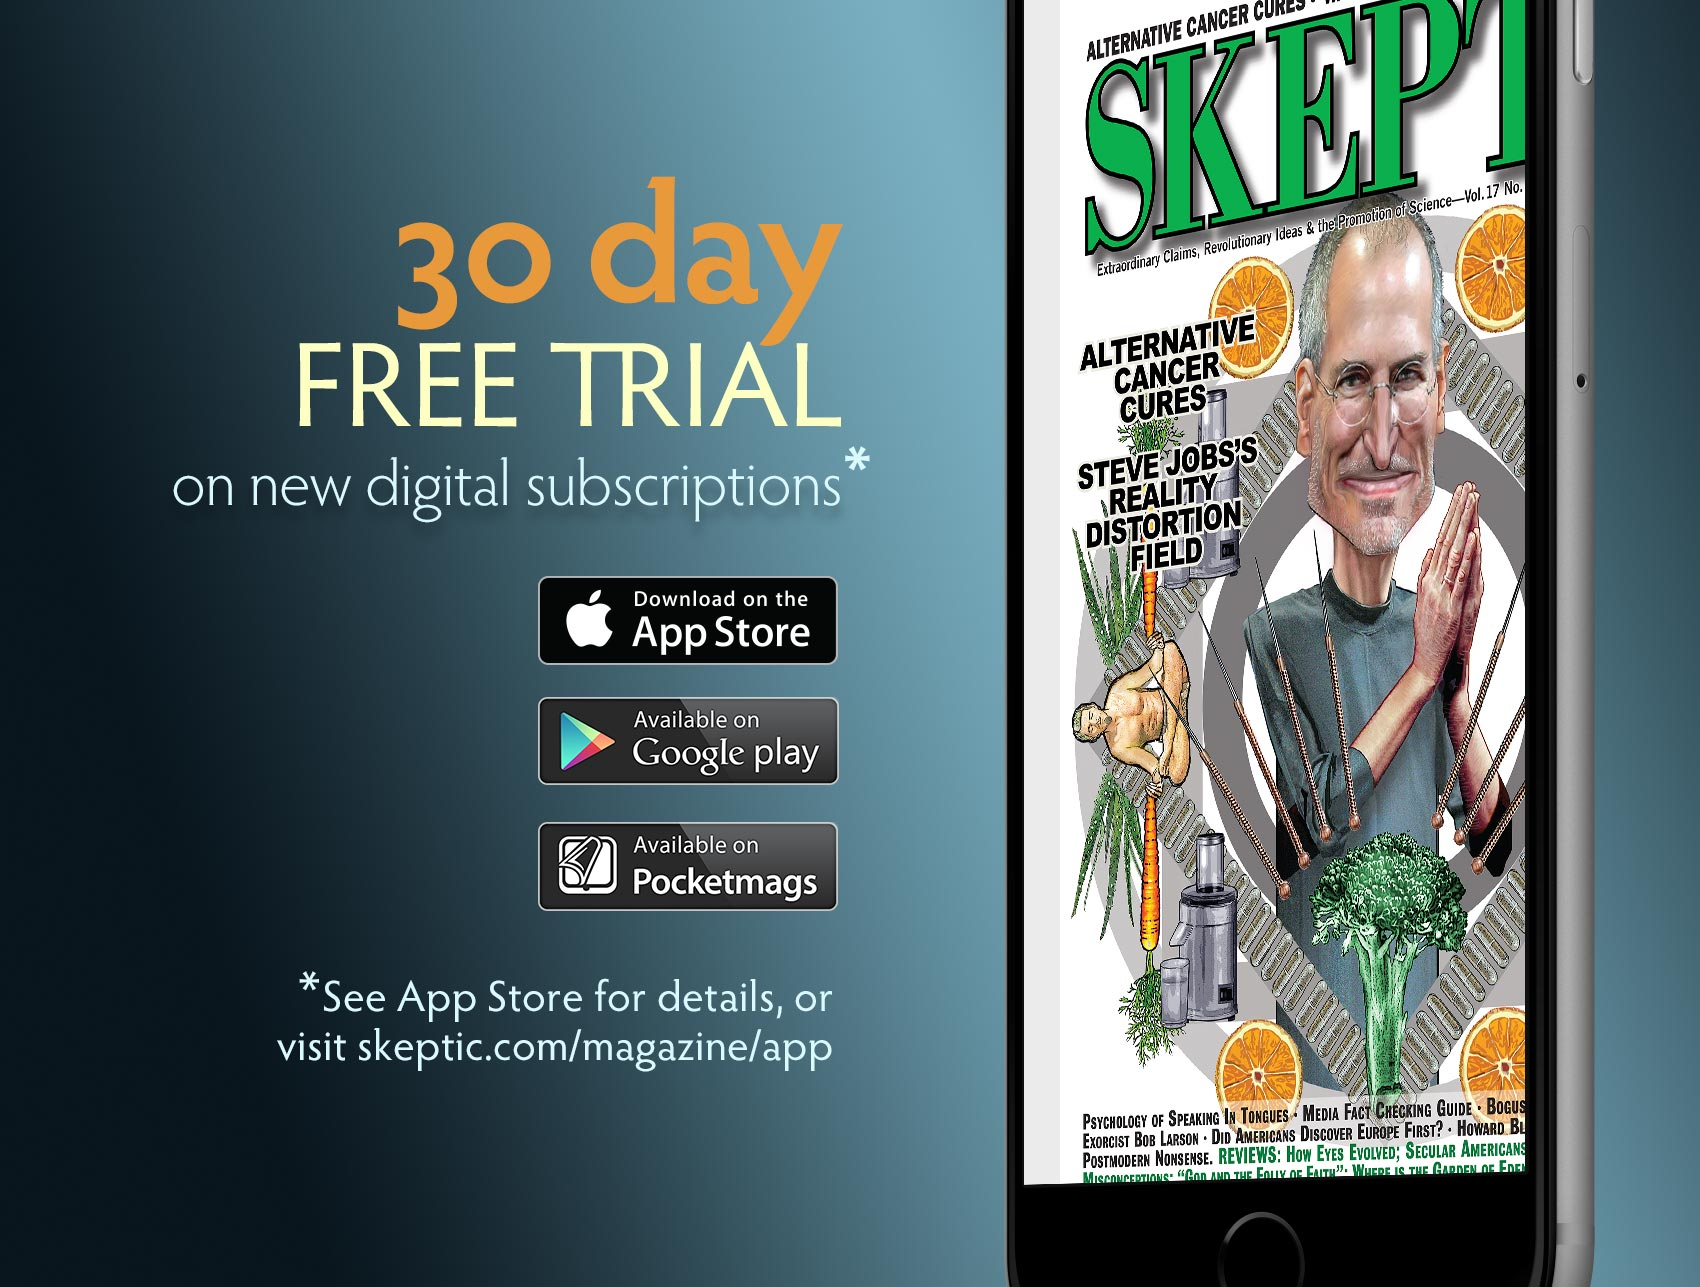 Skeptic » The Magazine » Digital Subscriptions and Back Issues